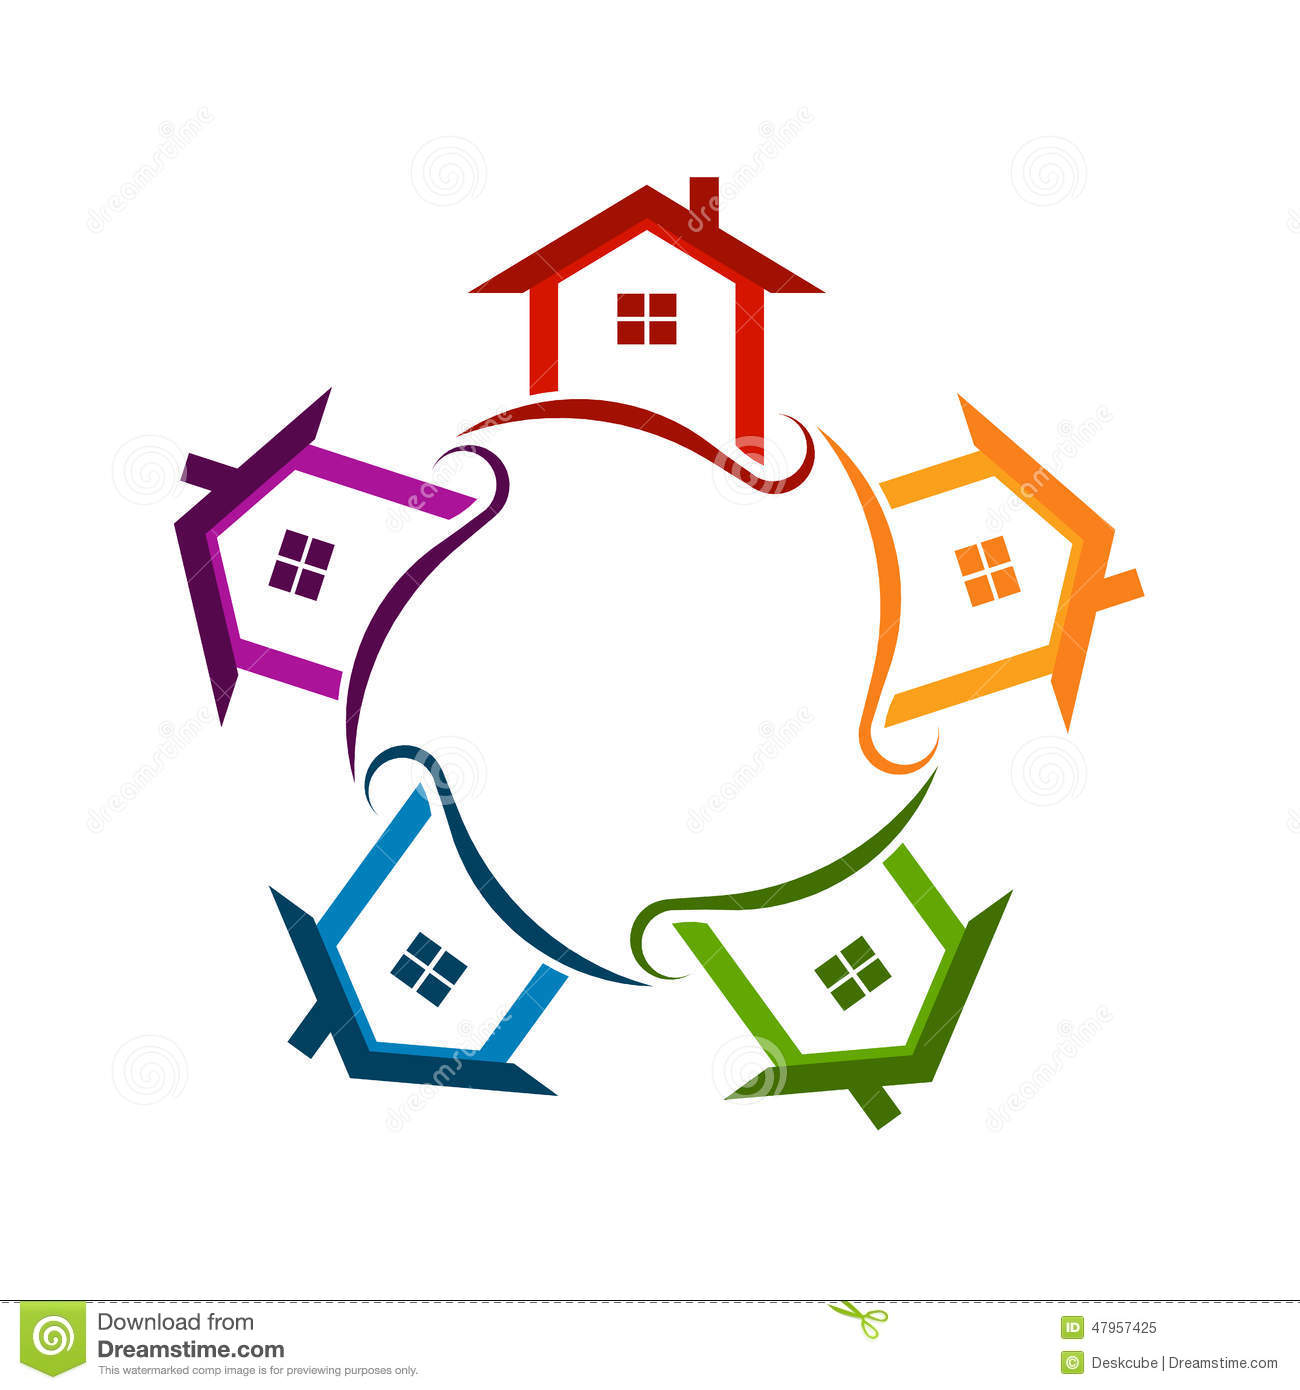 Community Neighborhood Houses Logo Stock Photo - Image: 47957425